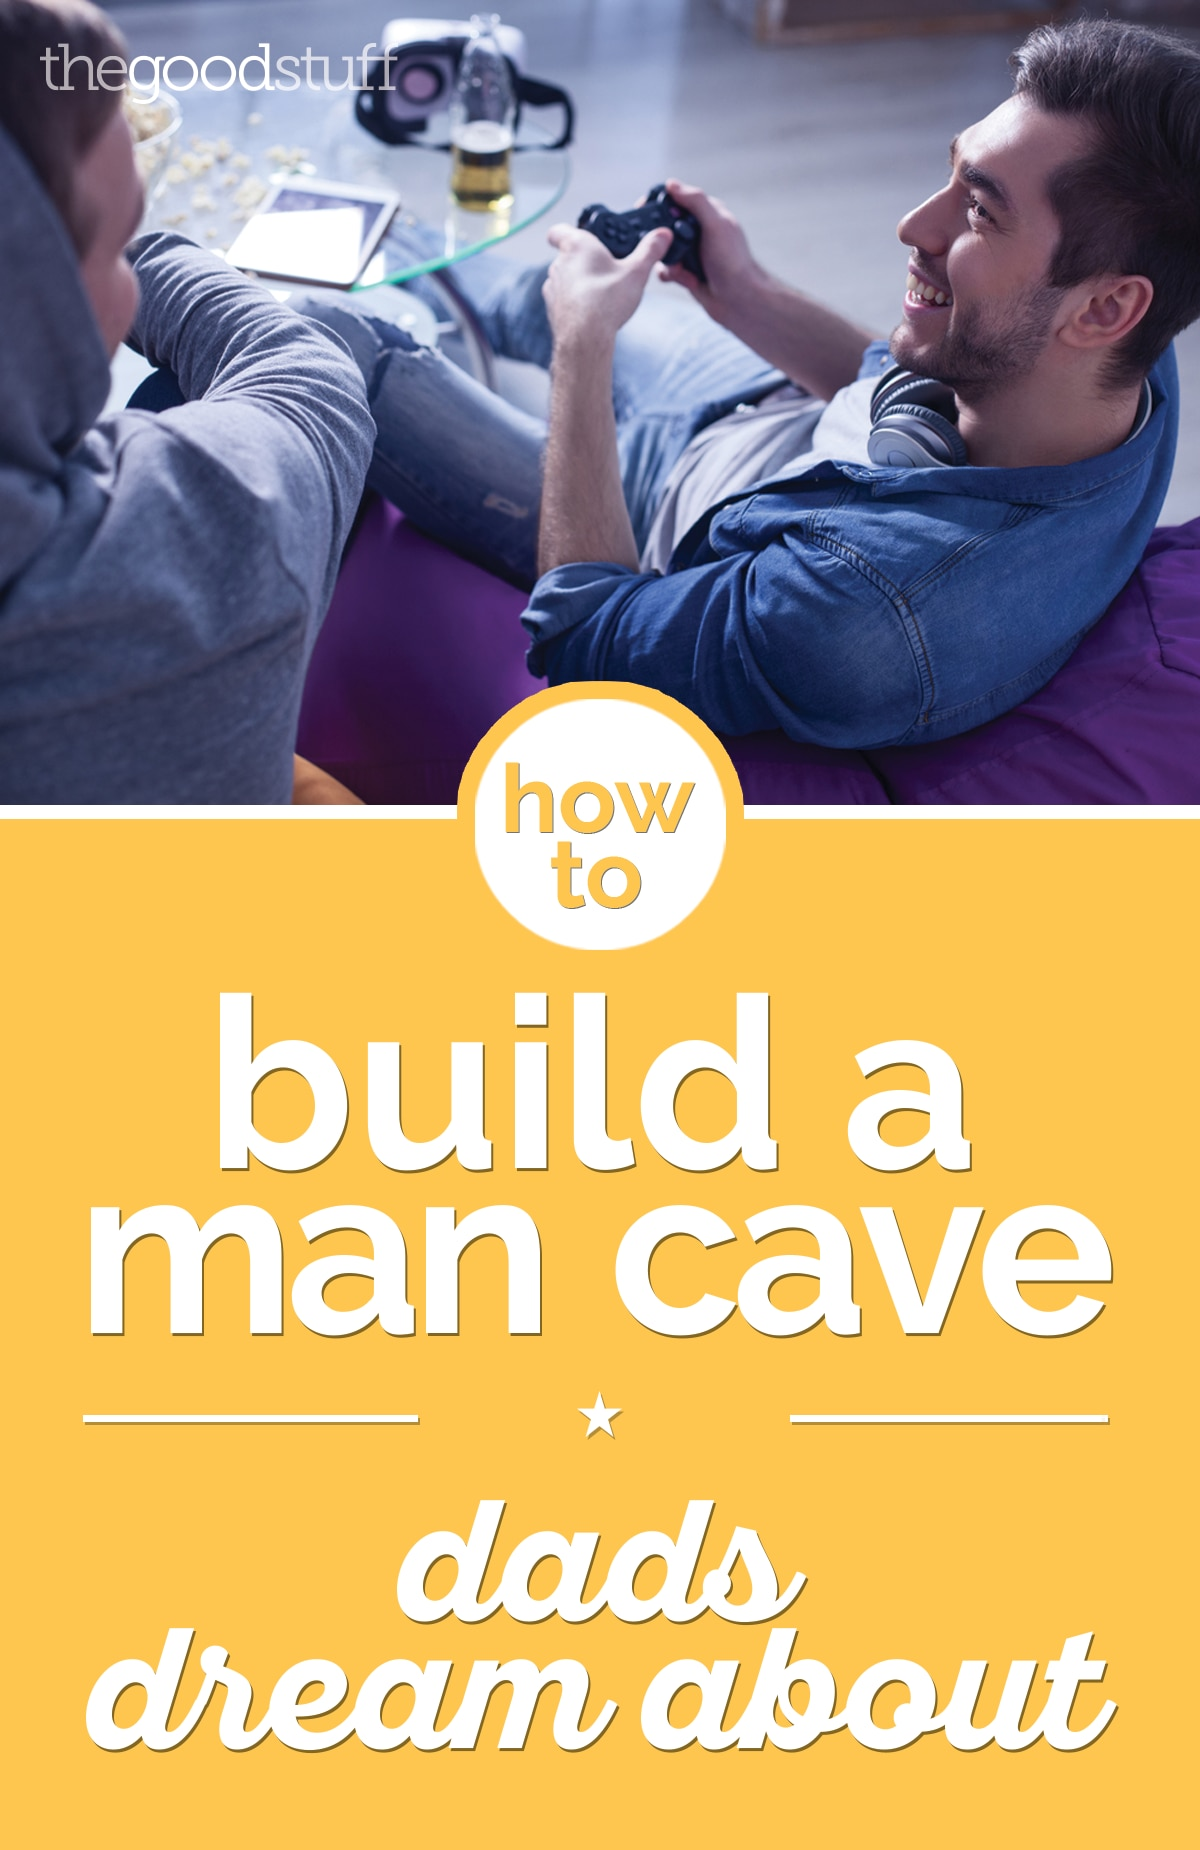 How to Build a Man Cave Dads Dream About | thegoodstuff